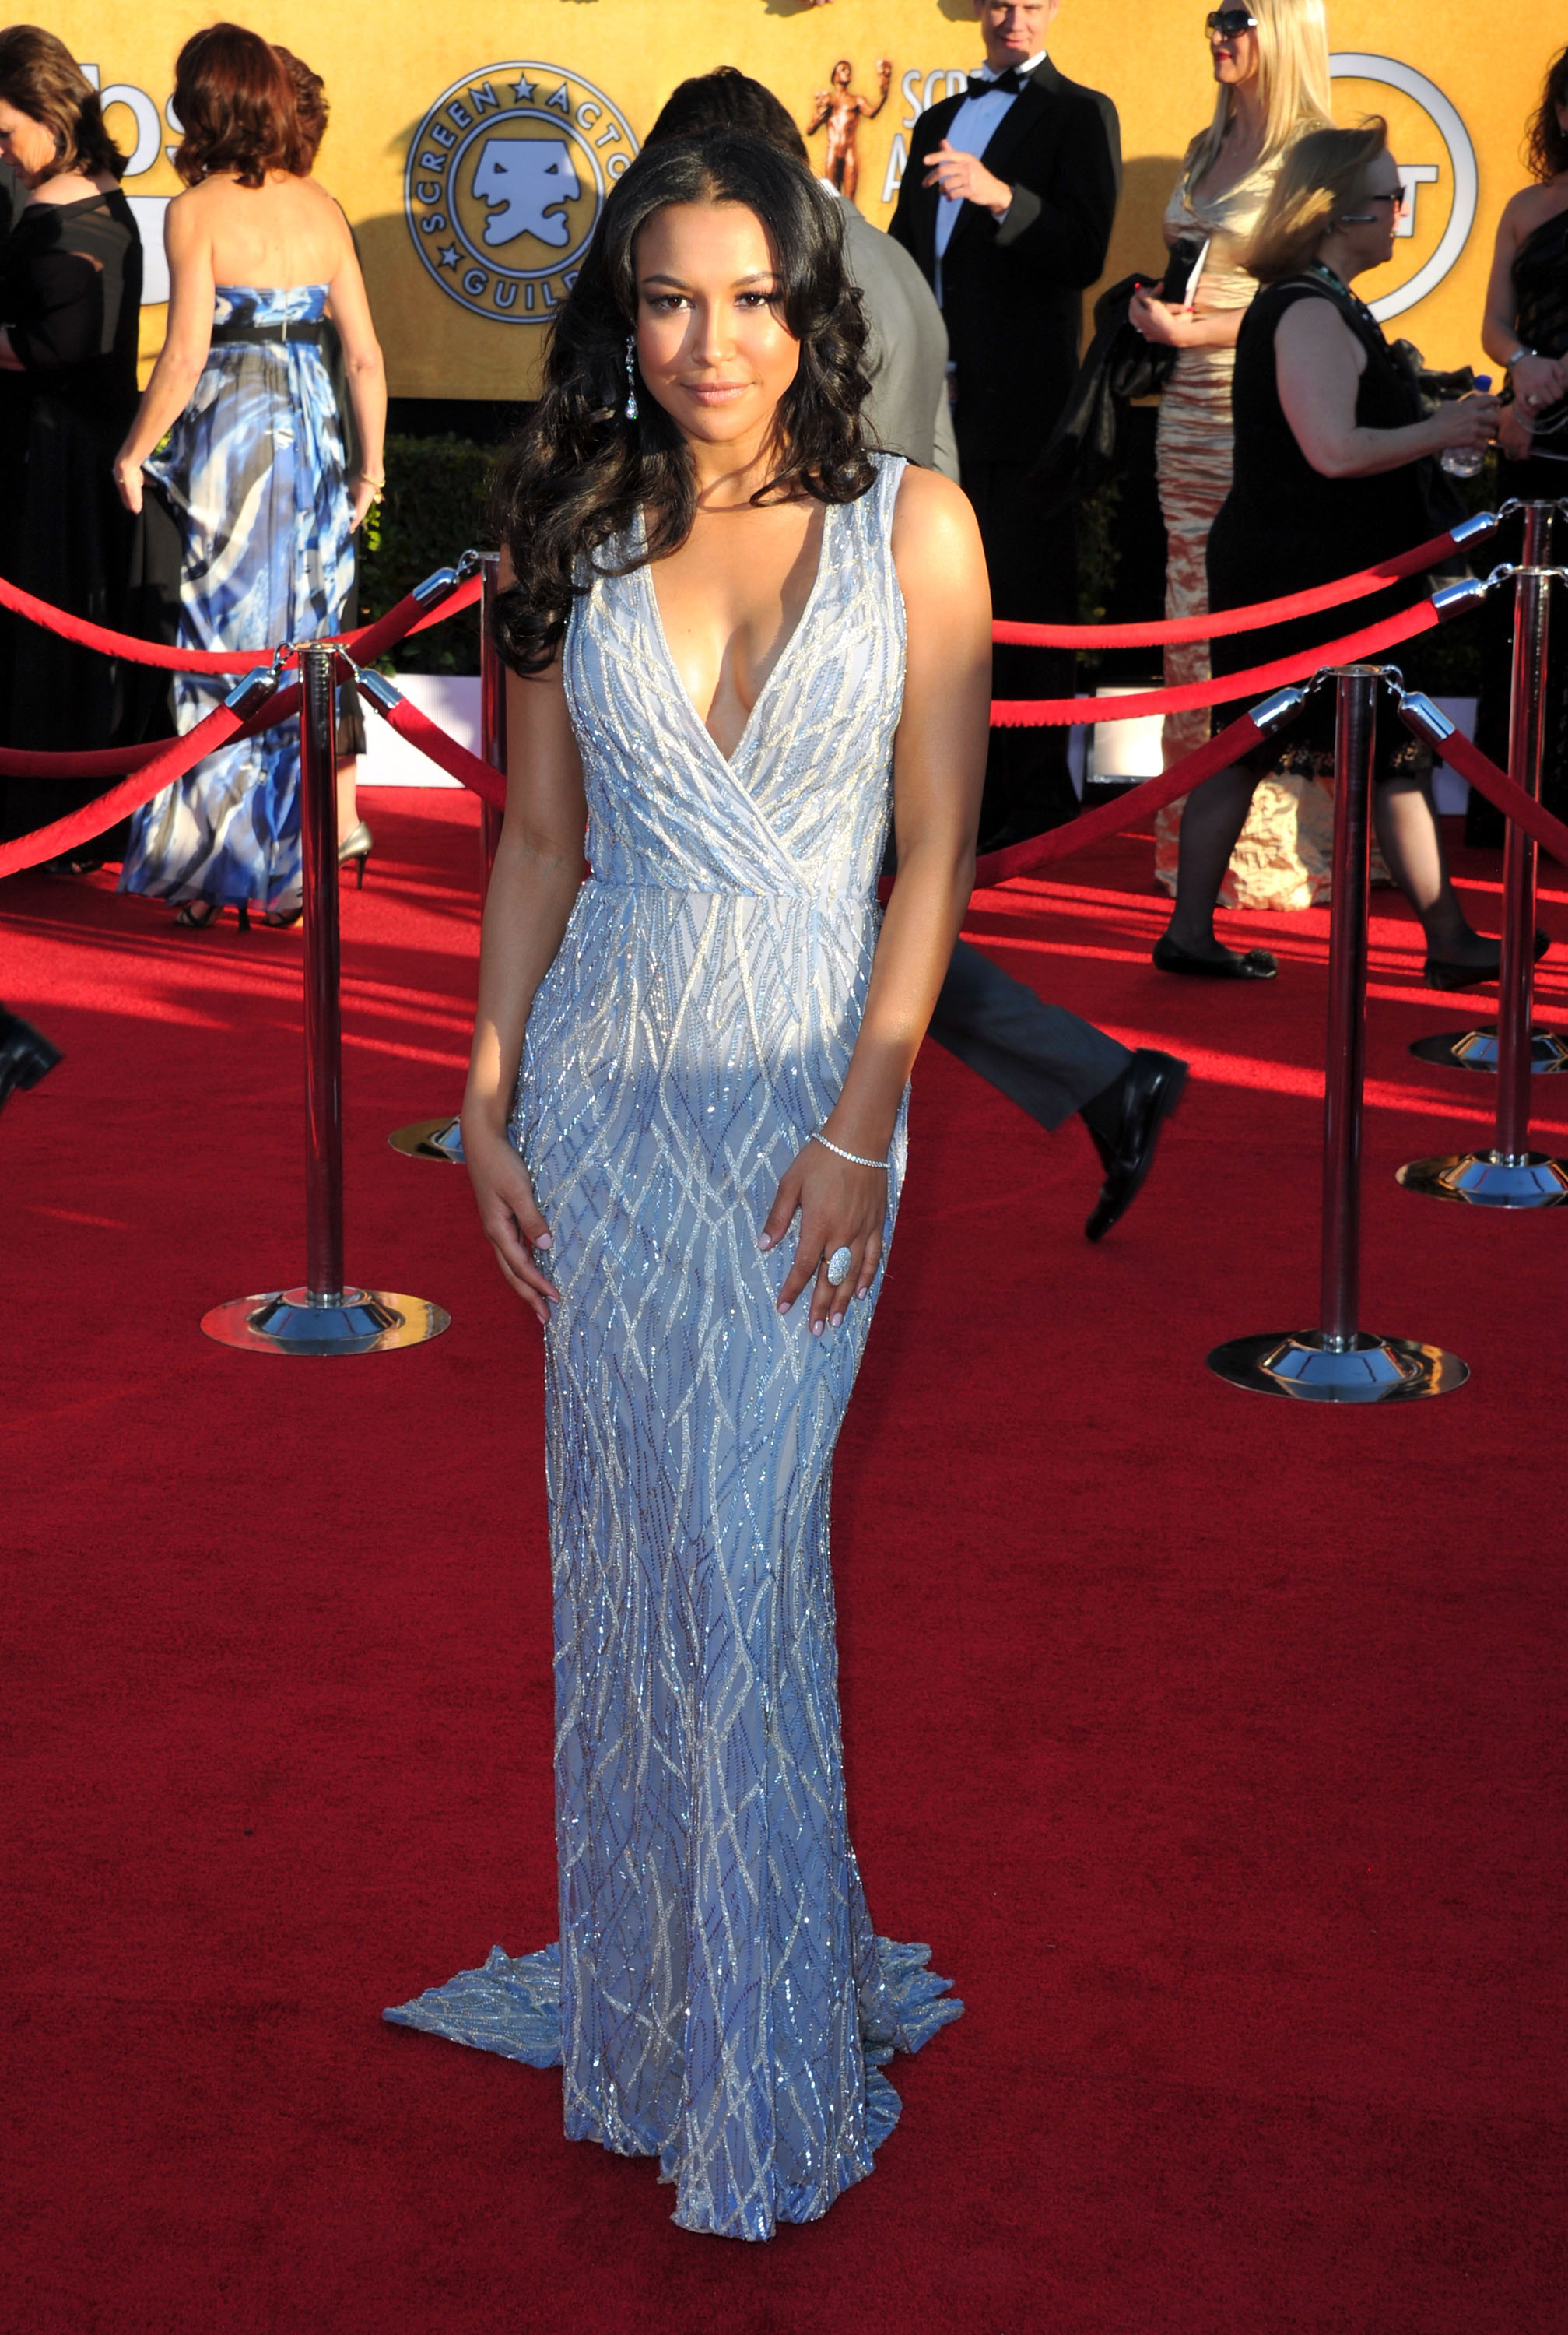 Naya Rivera at the SAG Awards